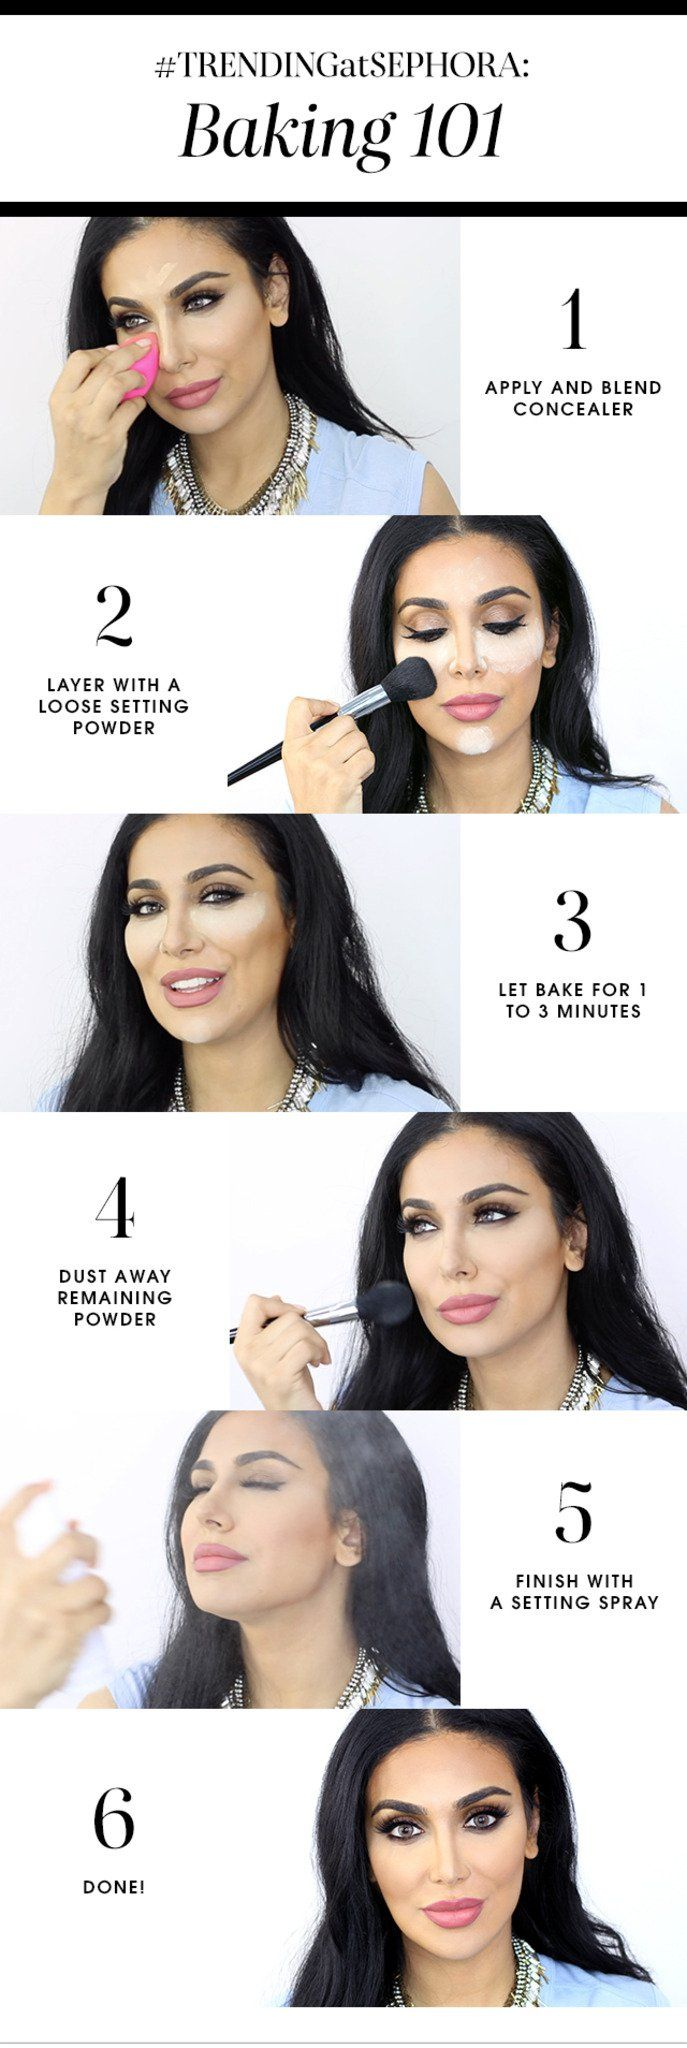 Baking Makeup: Everything You Need To Know